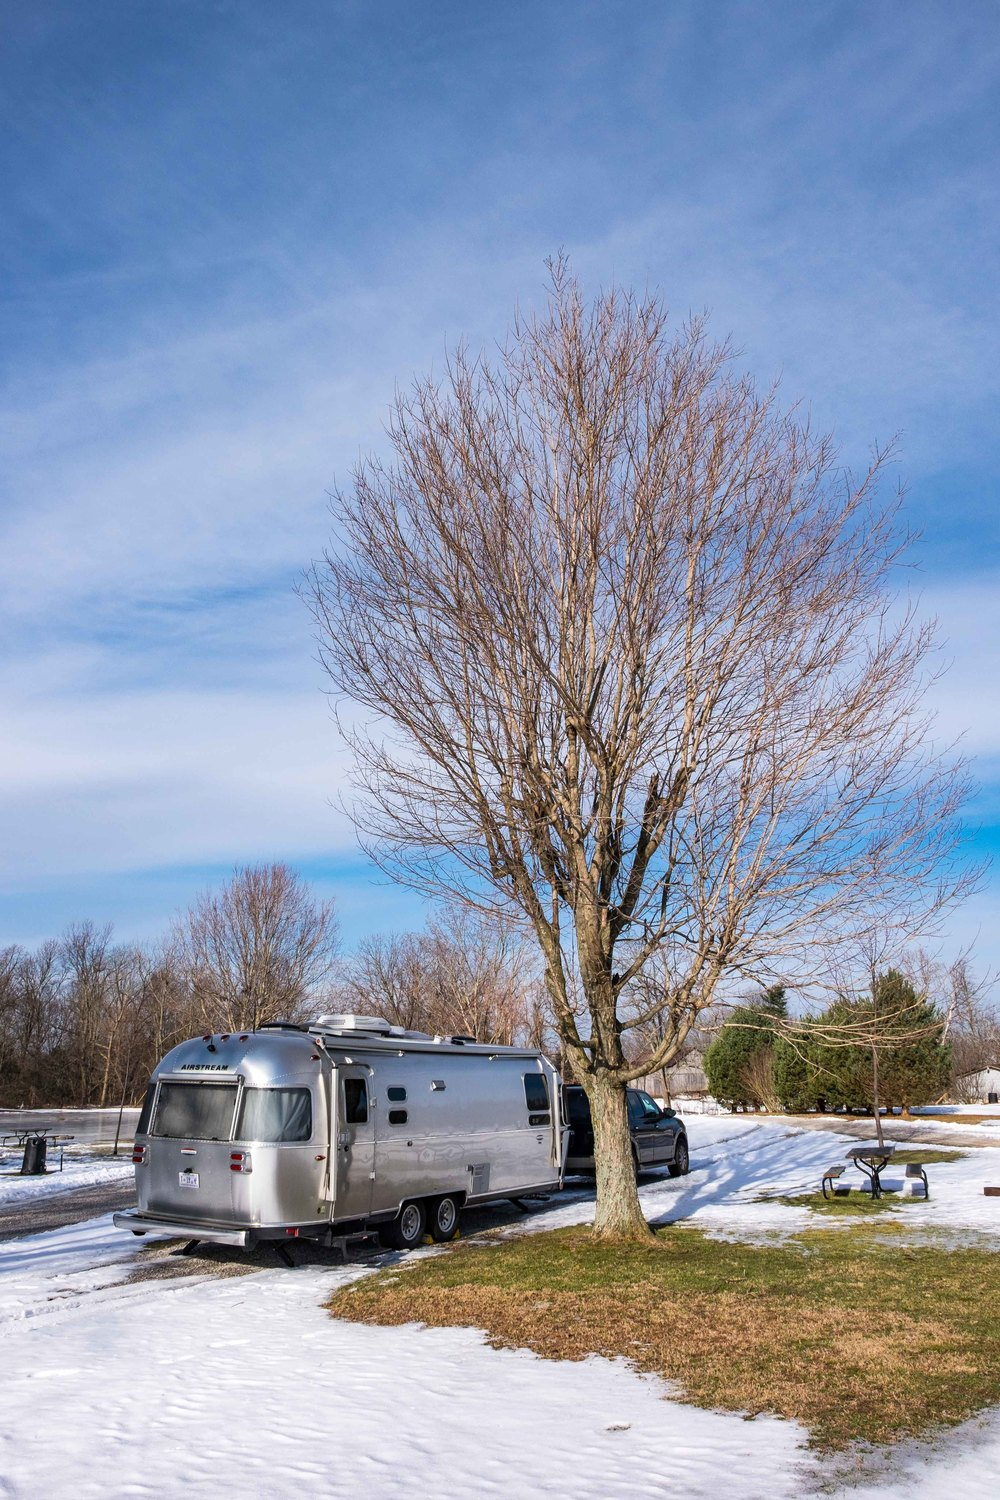 RV'ing in the snow and cold. We found a good spot to park Wally (our Airstream).